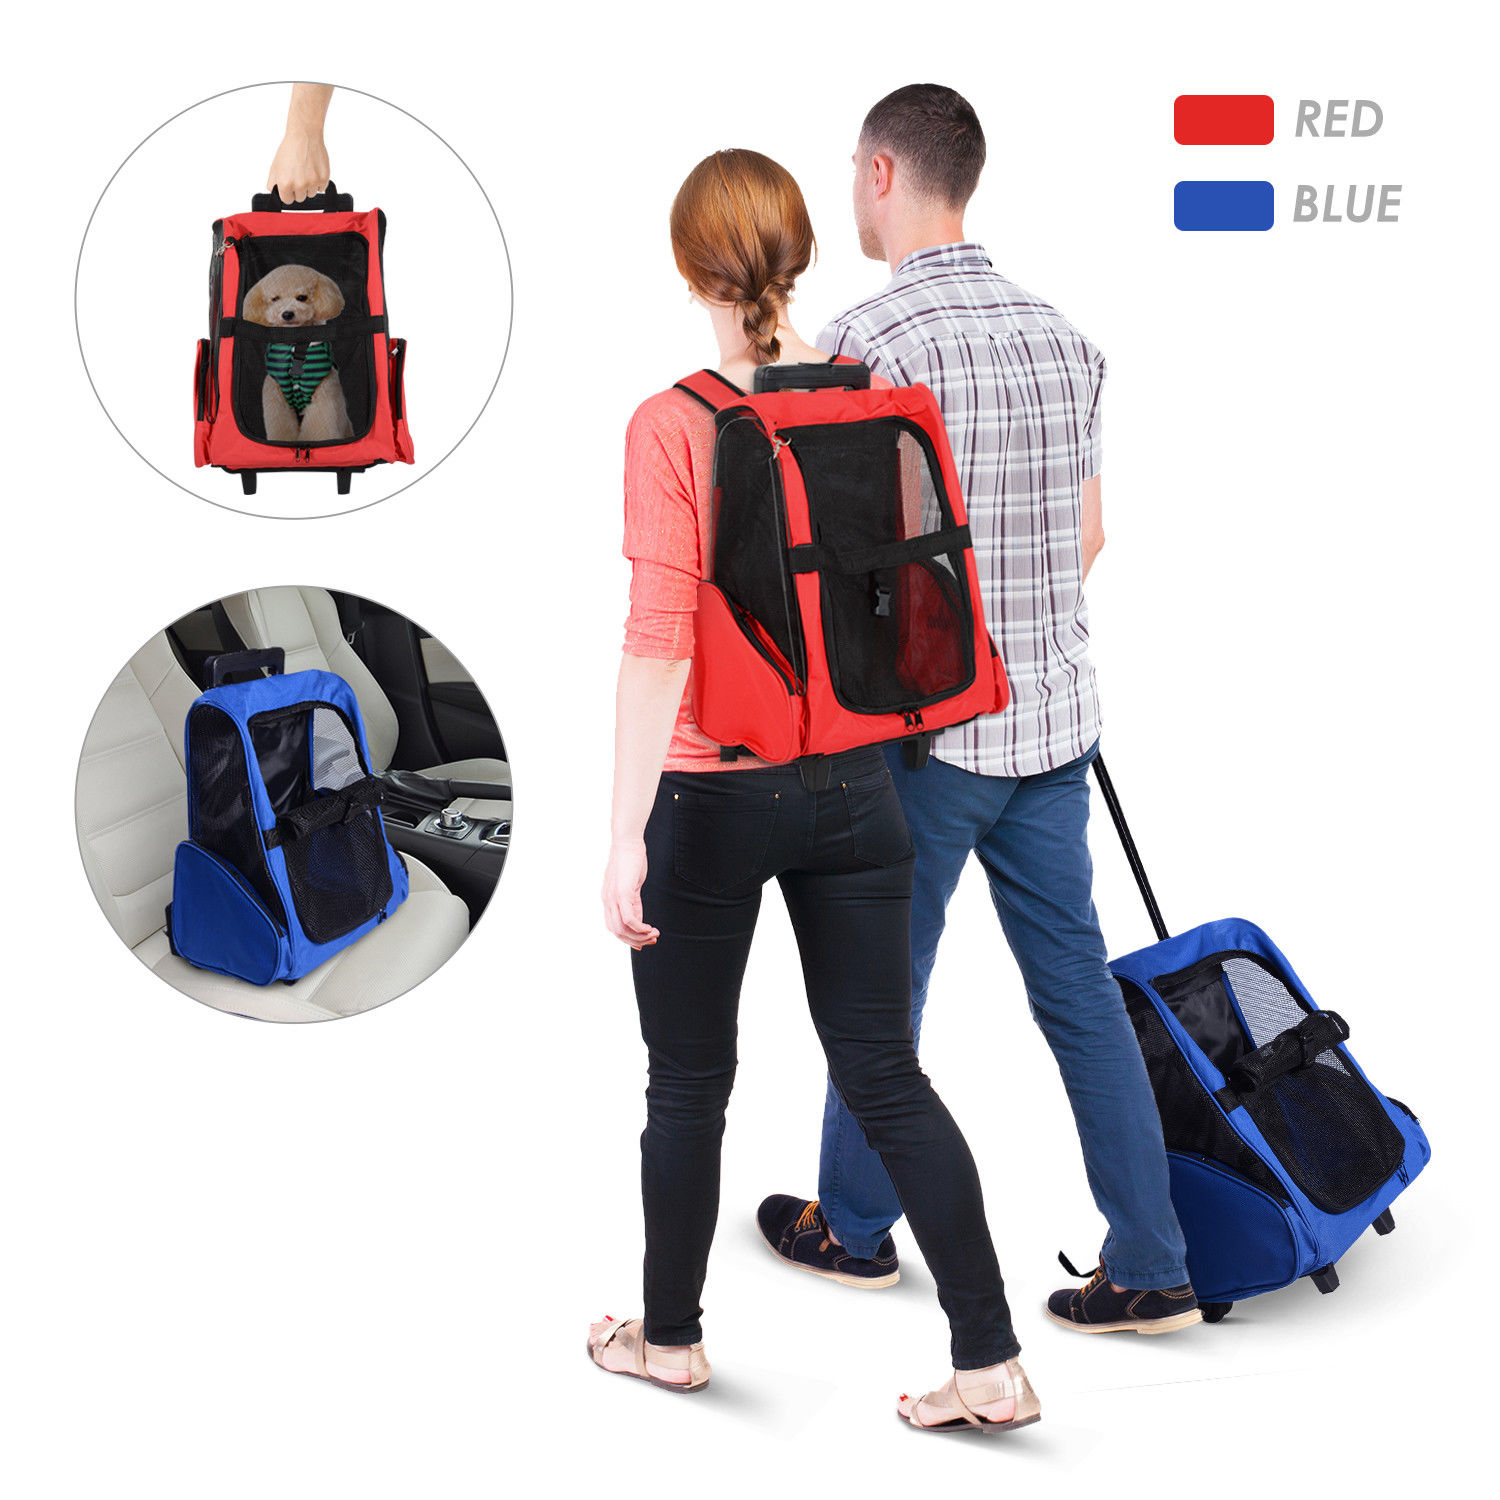 PawHut-Pet-Luggage-Box-Dog-Cat-Travel-Backpack-Carrier-w-Rolling-Wheels-Stand